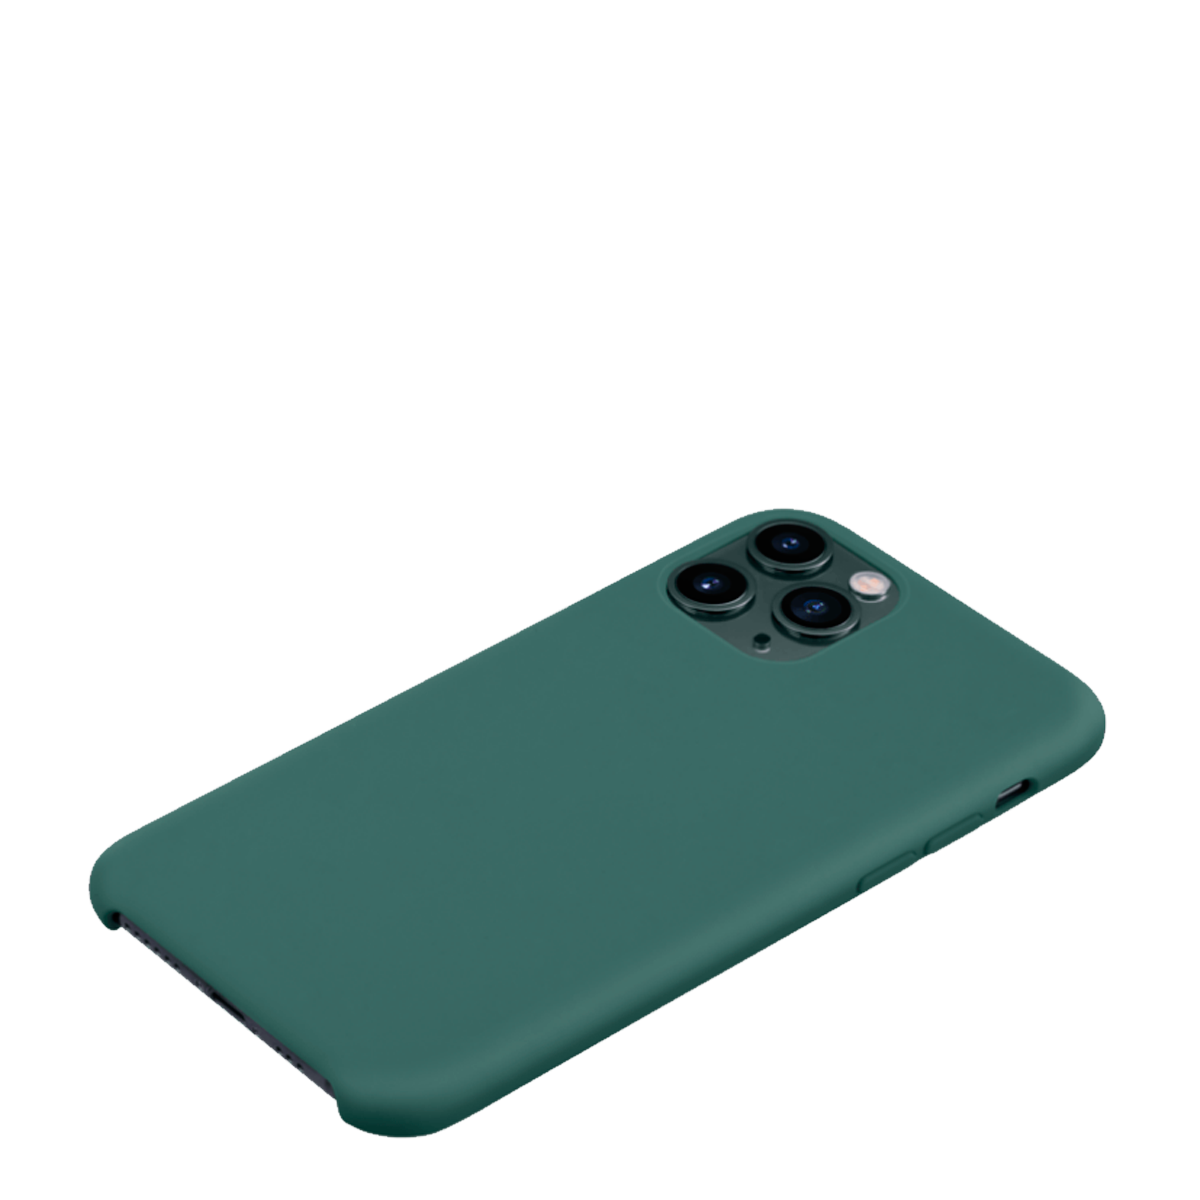 Capa de Smartphone The Kase Silicone Apple iPhone 11 Pro Verde Musgo